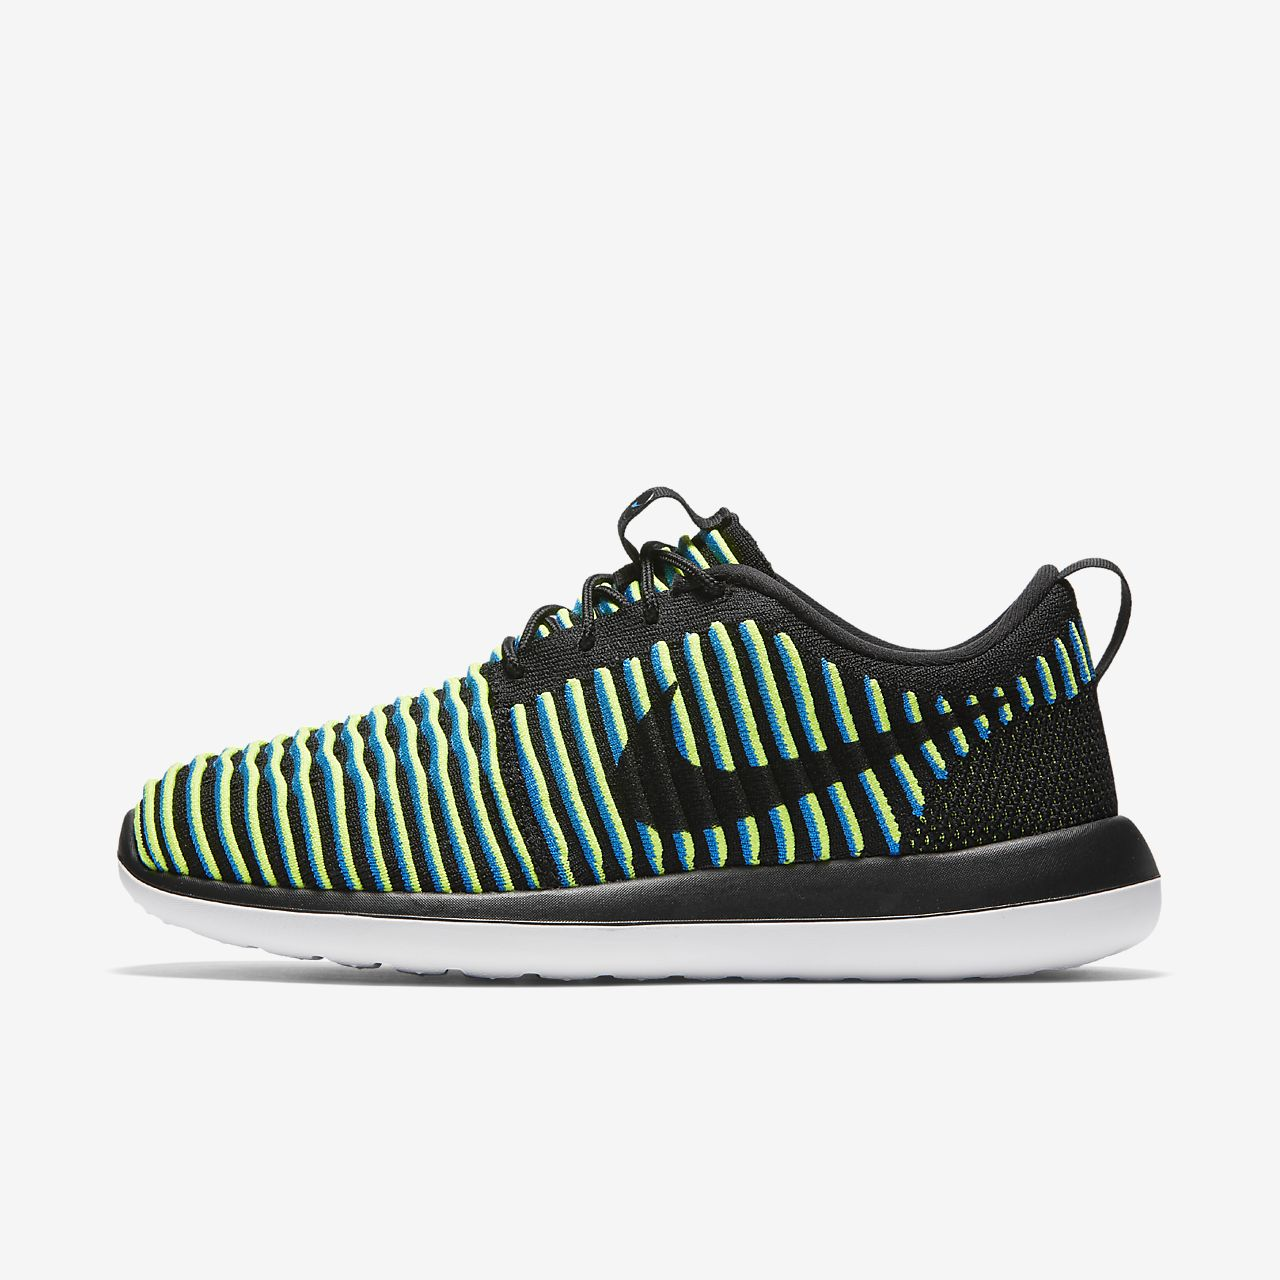 ... Chaussure Nike Roshe Two Flyknit pour Femme